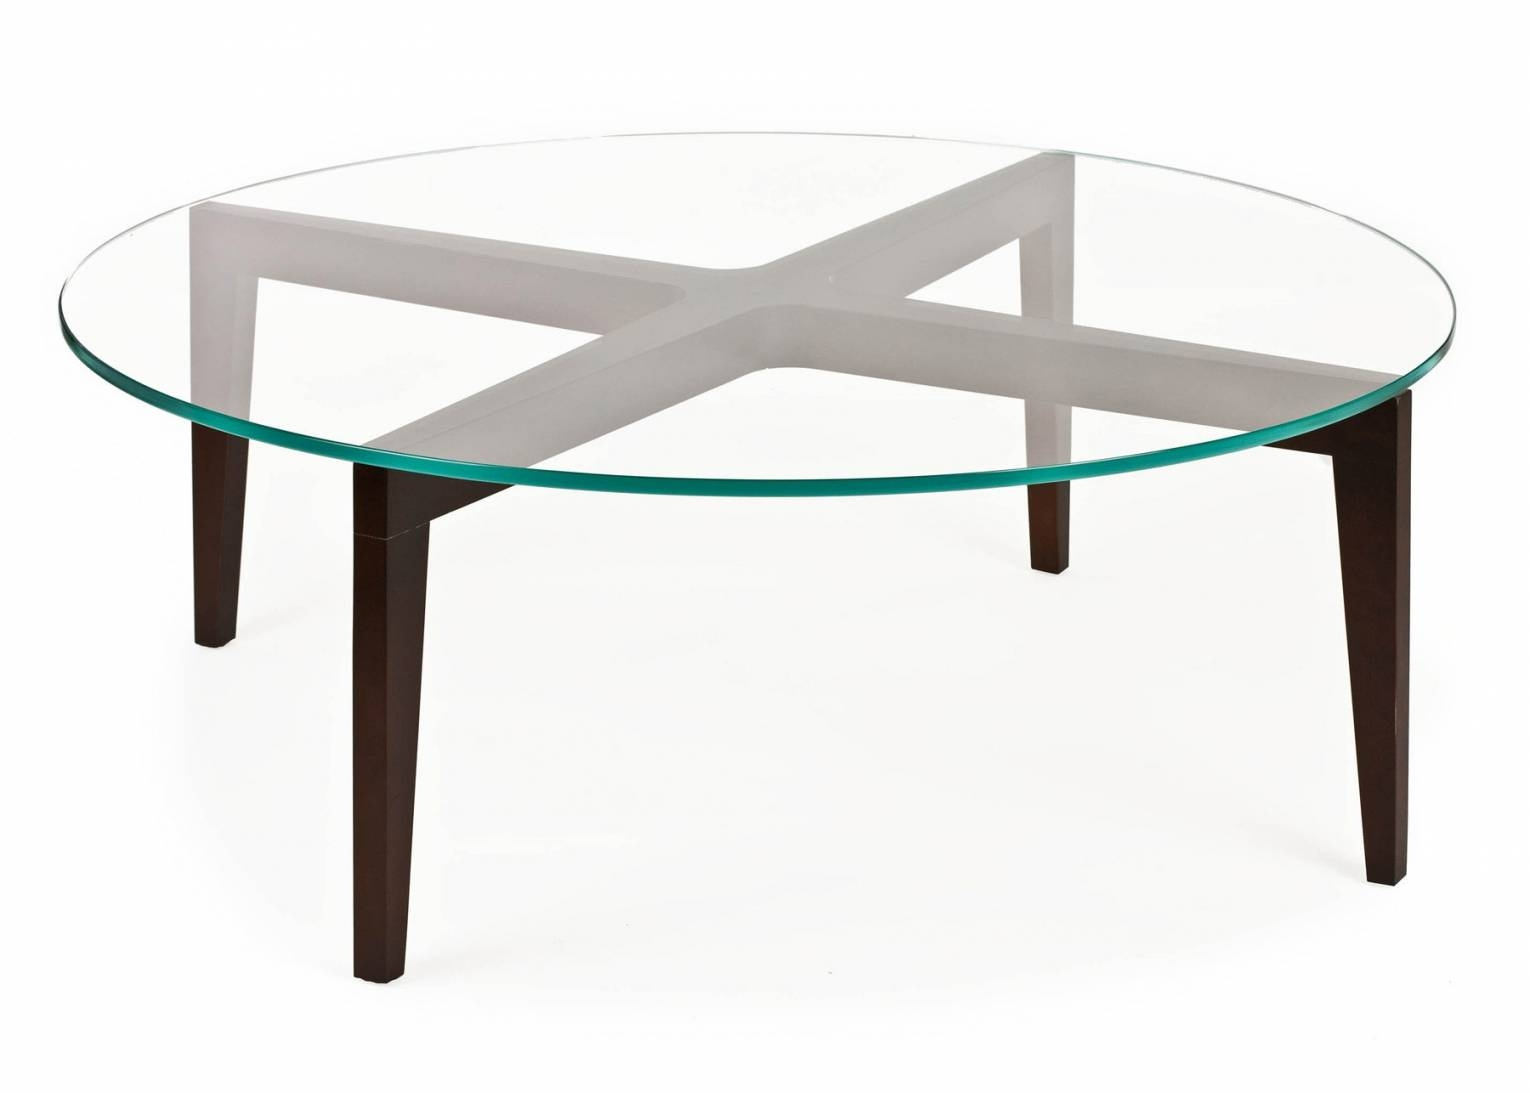 Round Glass Coffee Table With Wood Base - Jericho Mafjar Project throughout Glass Circular Coffee Tables (Image 26 of 31)